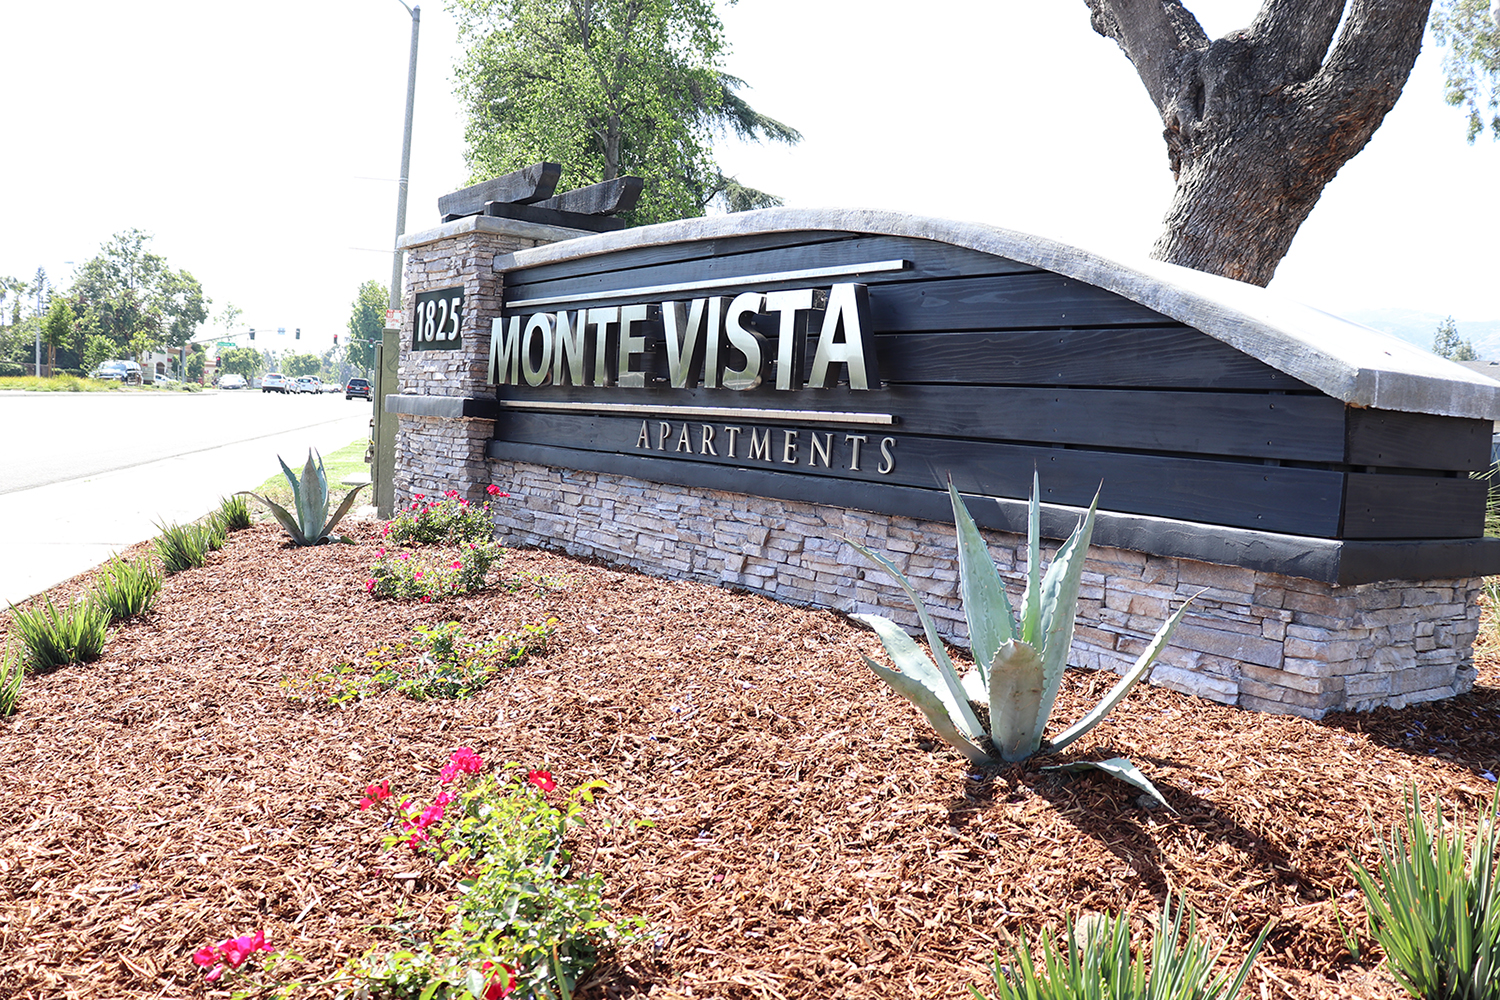 Monte Vista Apartment Homes at Monte Vista Apartment Homes, La Verne, California Signage